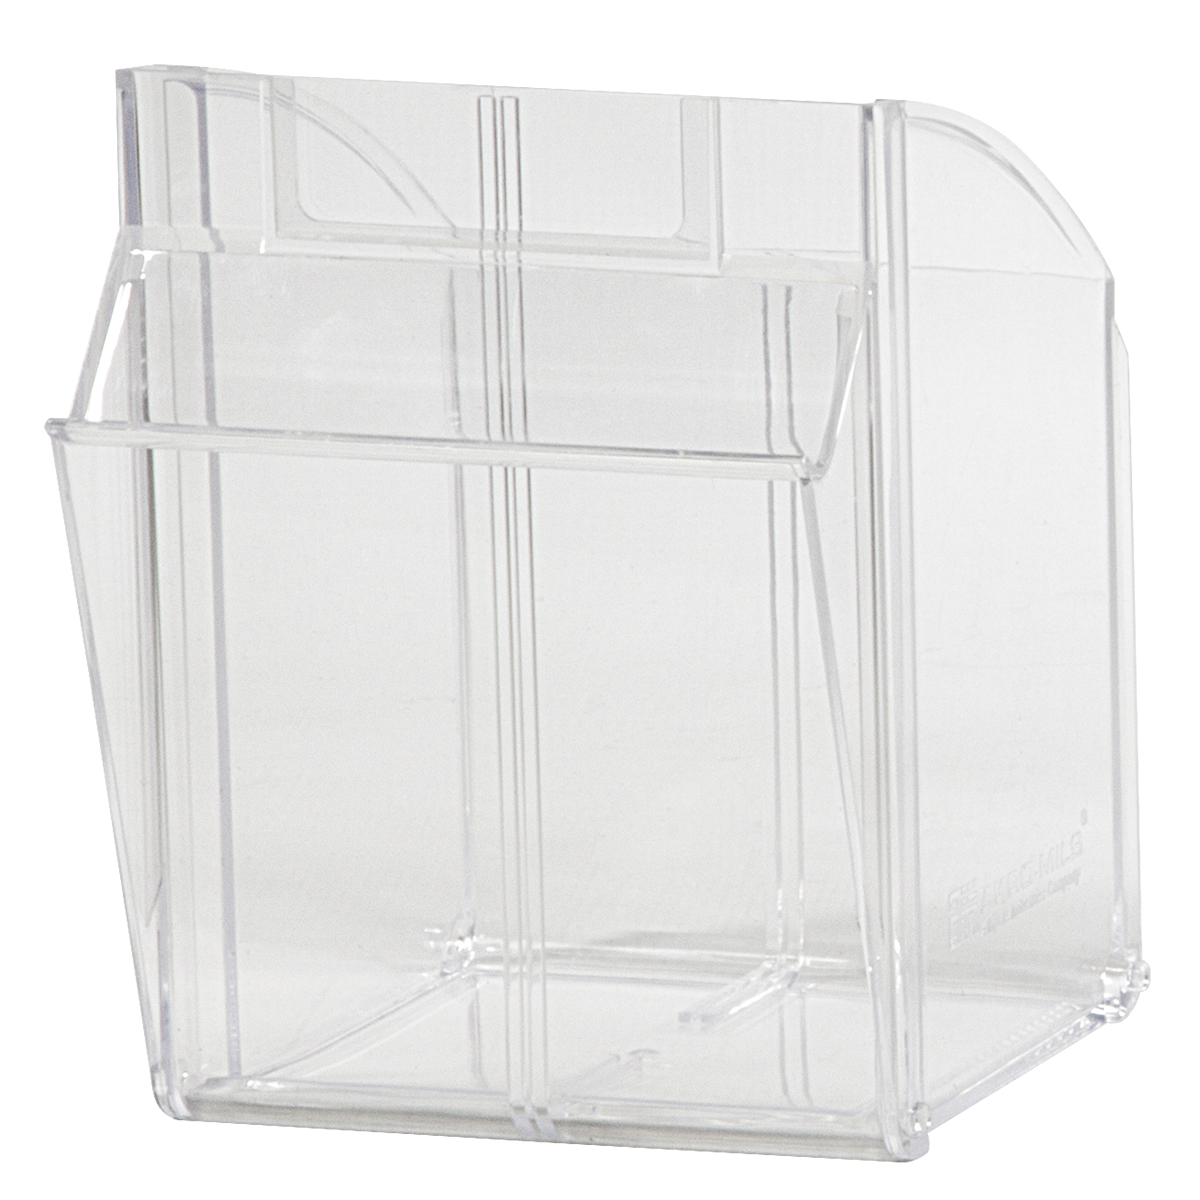 Replacement Bin for Model 06704, Clear (06704CUP).  This item sold in carton quantities of 1.